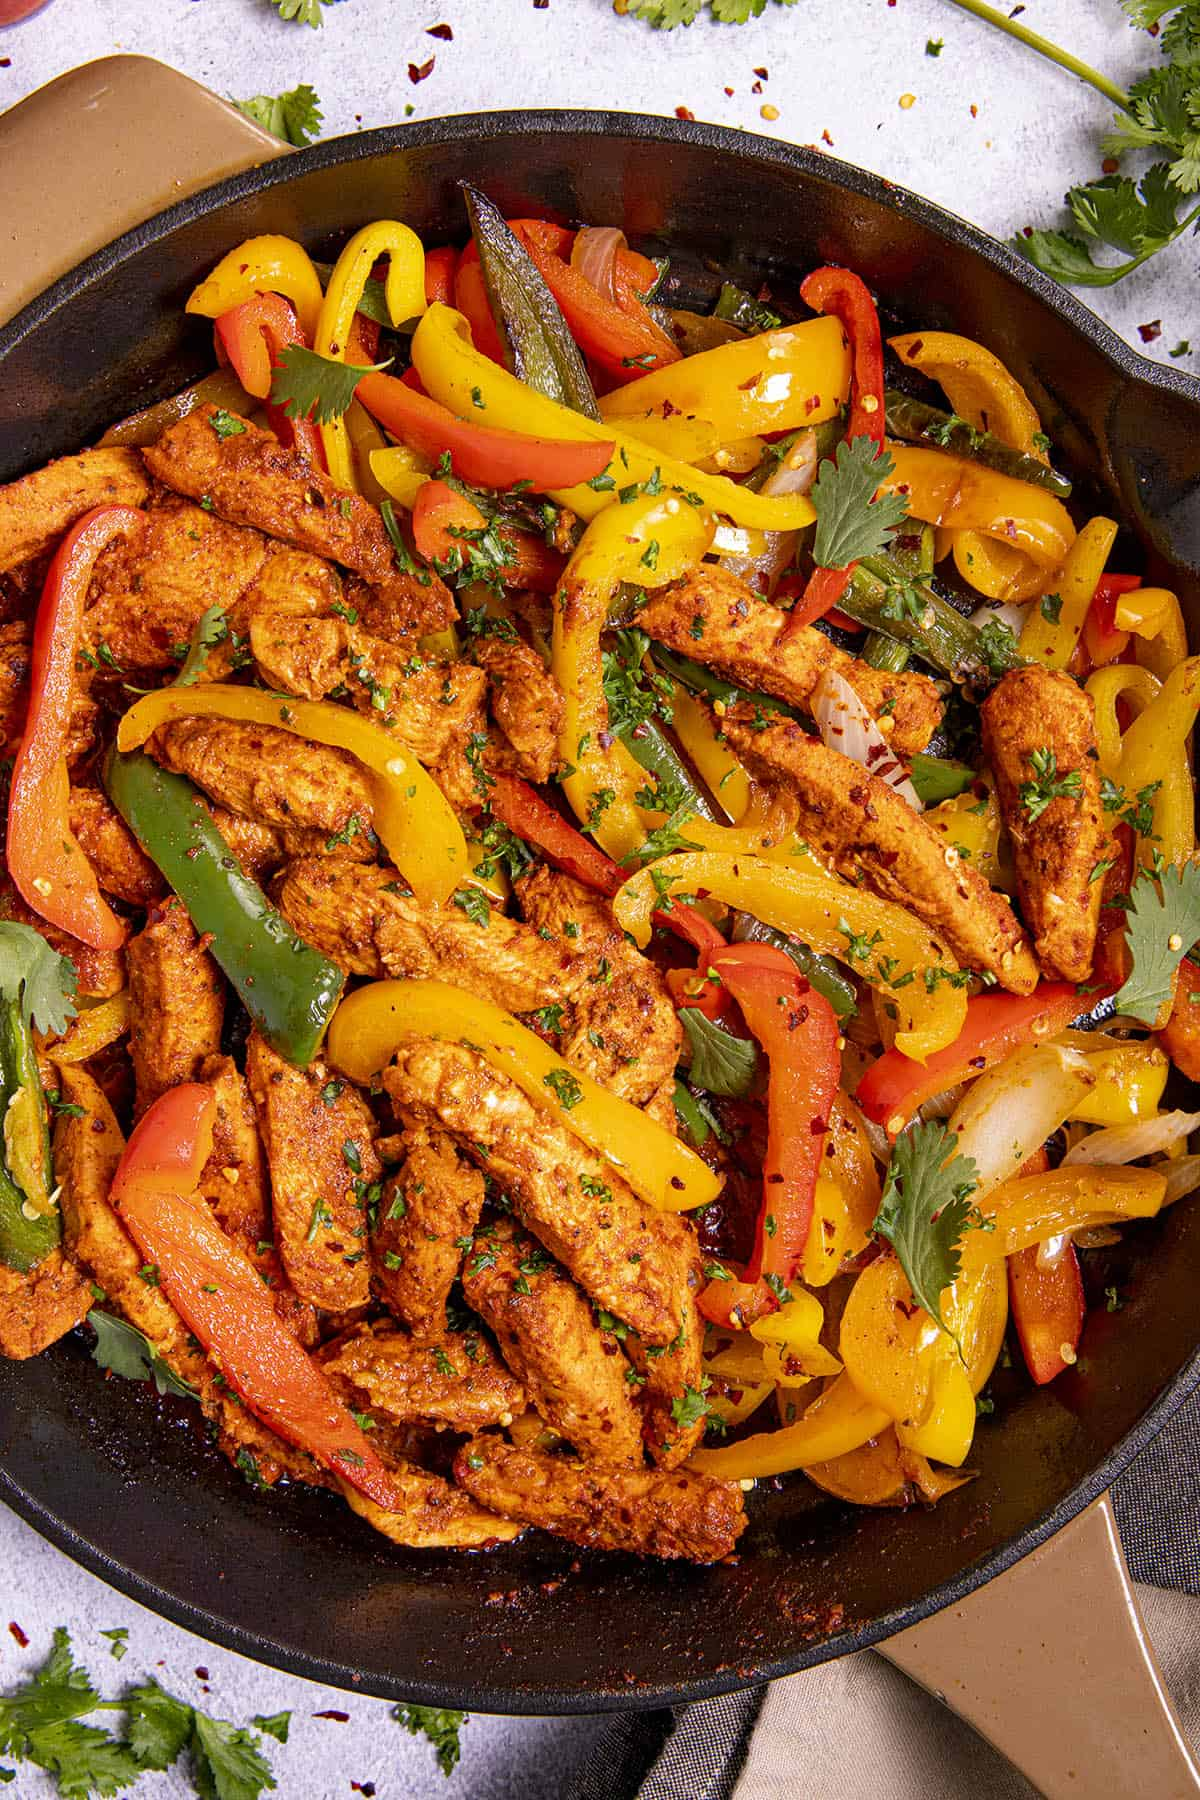 Chicken Fajitas in a pan with lots of colorful bell peppers